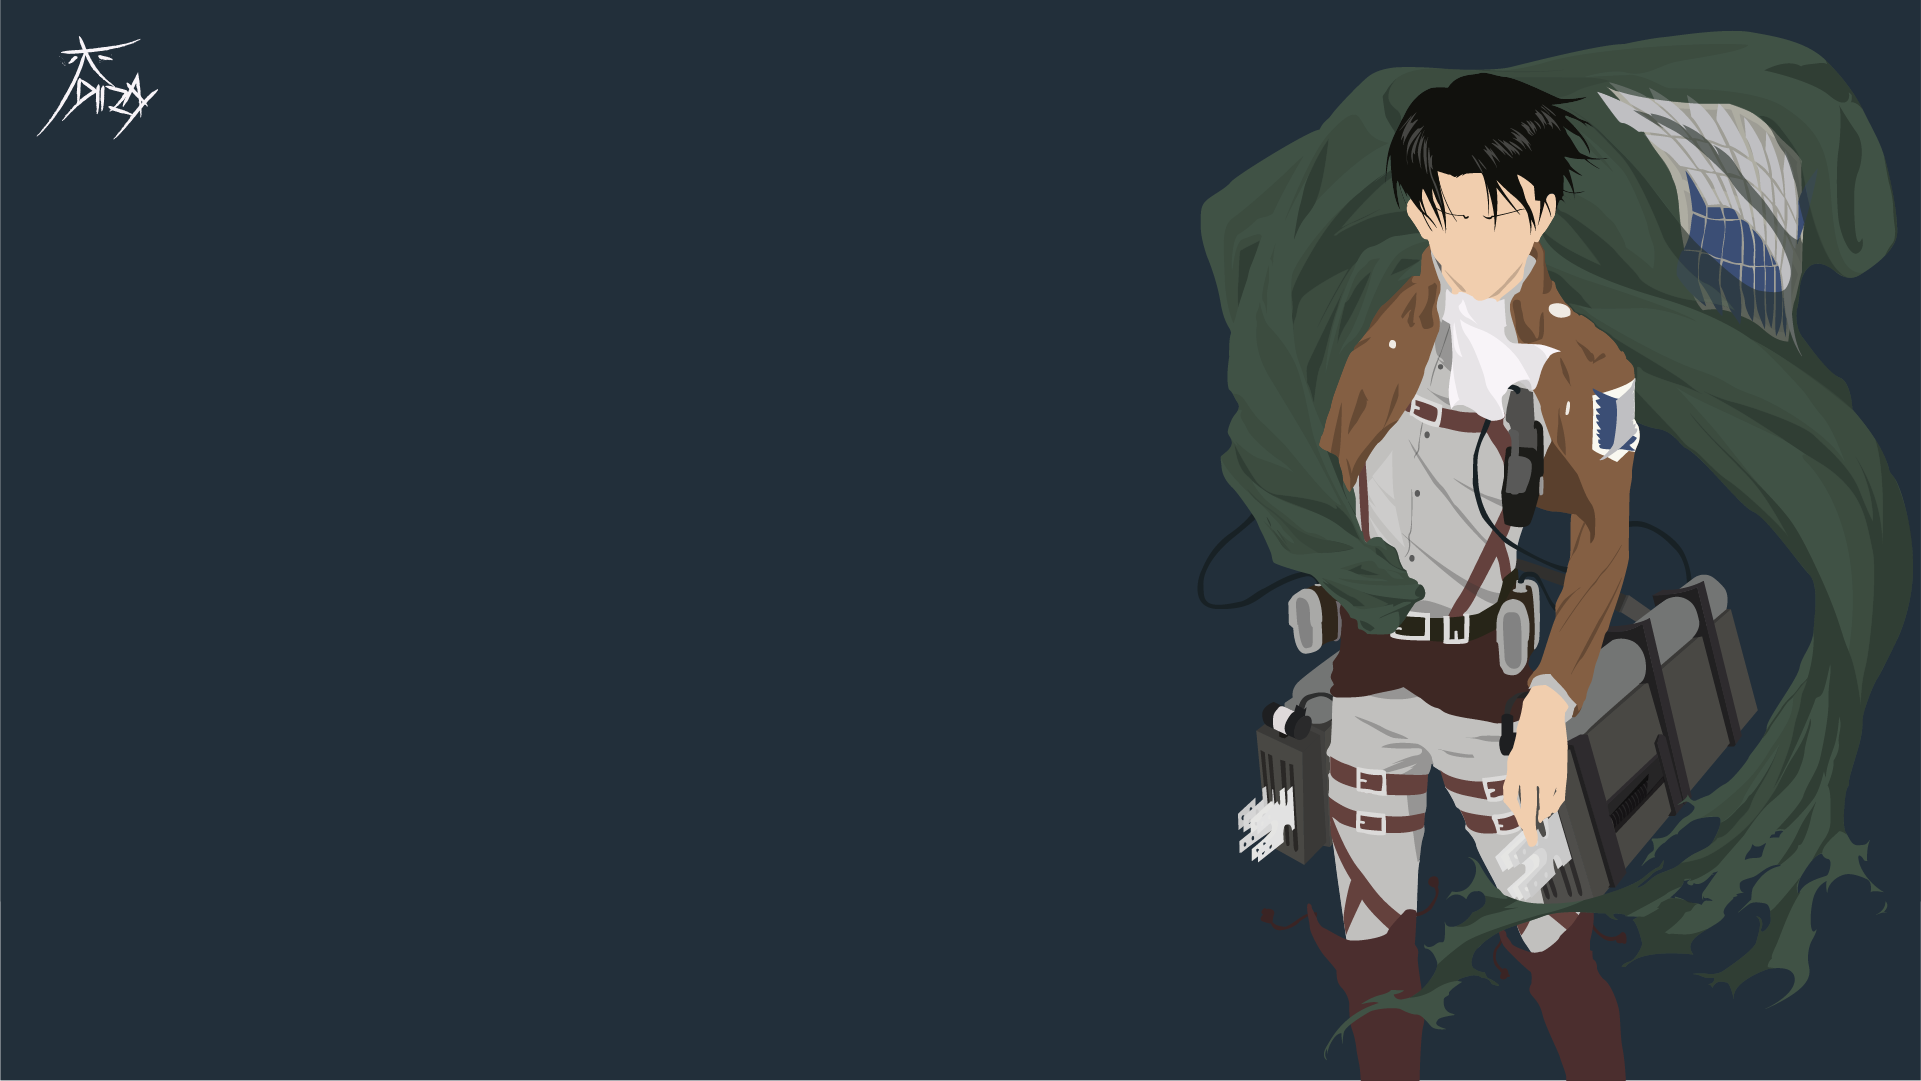 Levi Ackerman Attack On Titan Wallpaper By Diizay On Deviantart